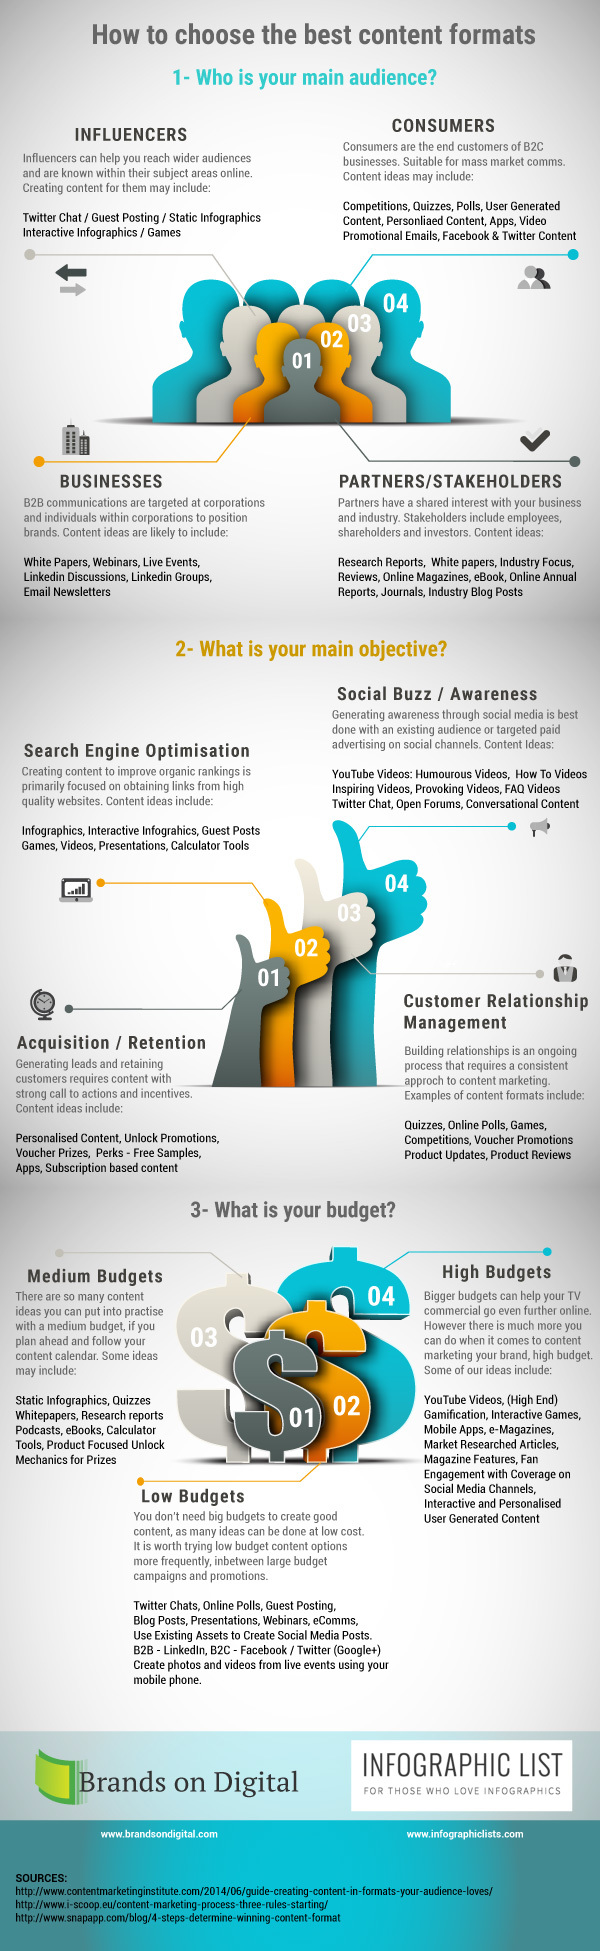 How to choose the best content marketing formats 2015 infographic